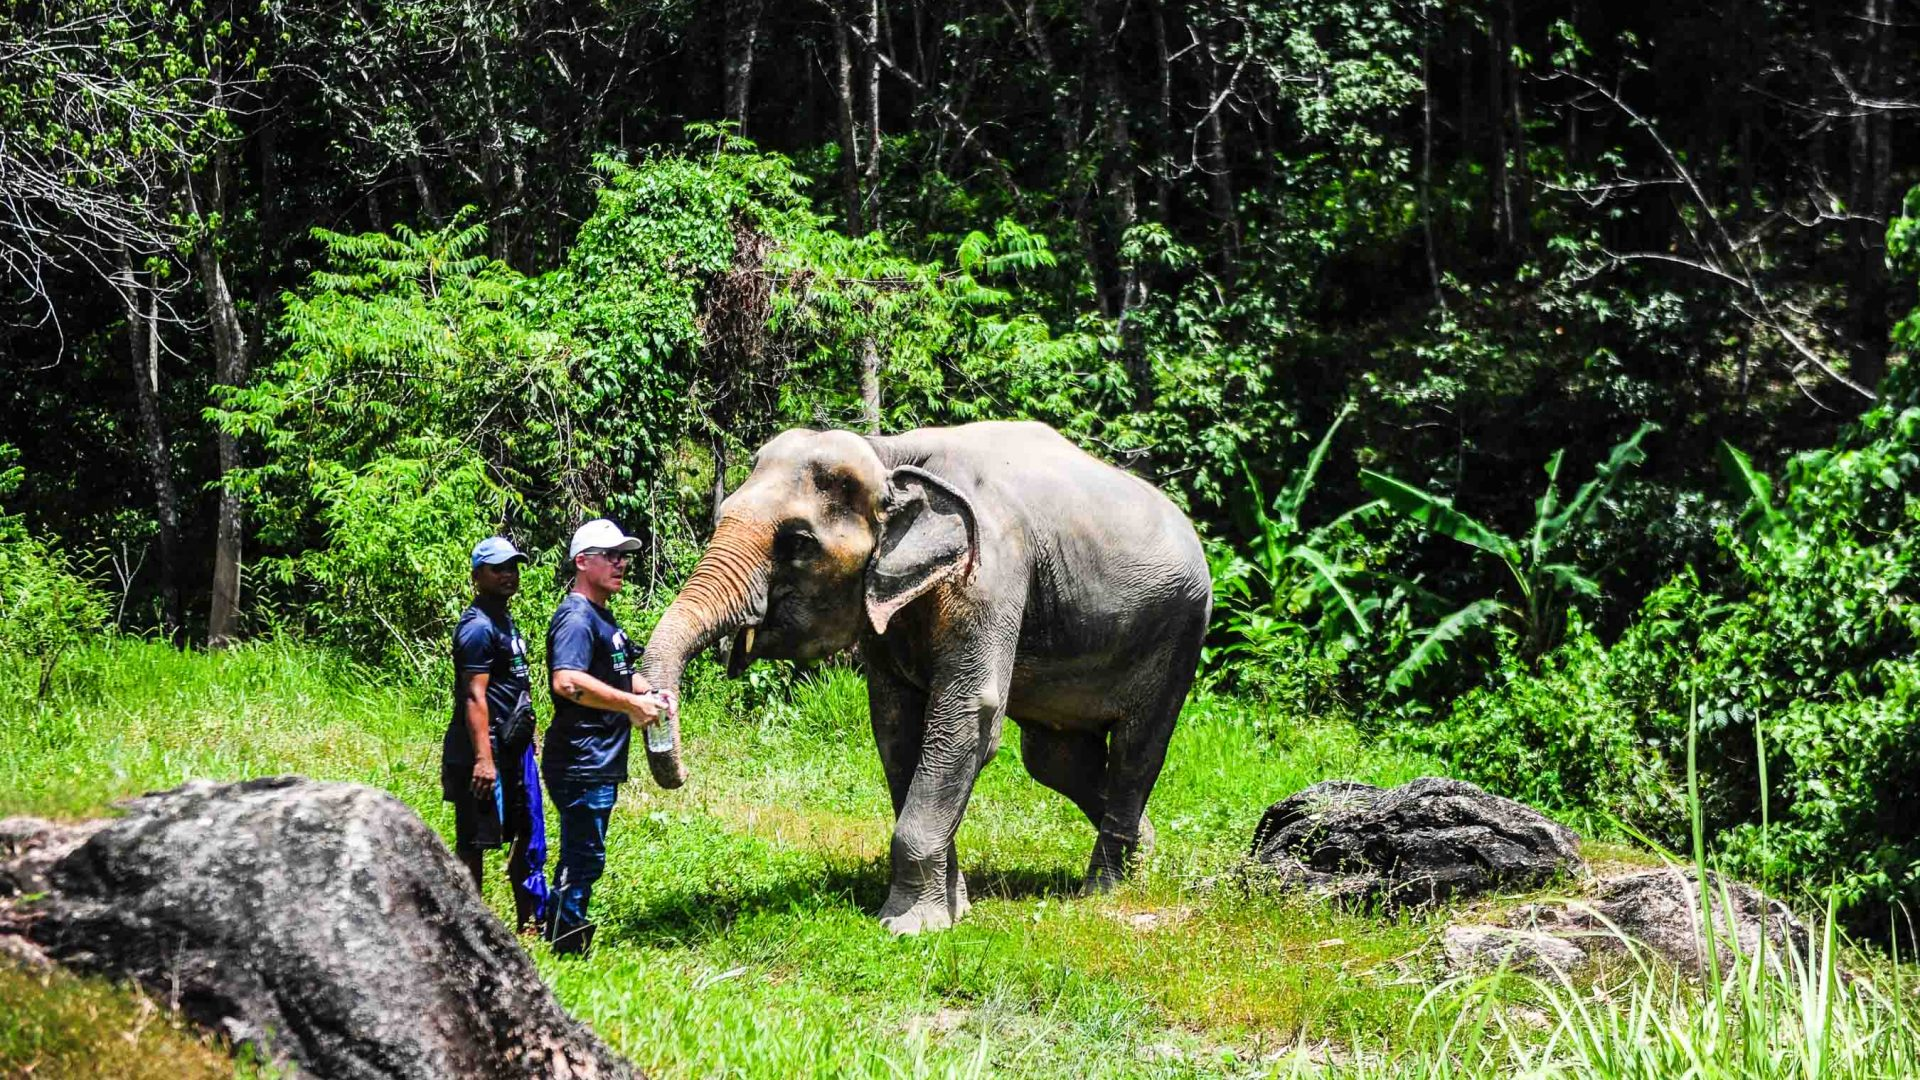 Two men stand with an elephant in green surrounds.